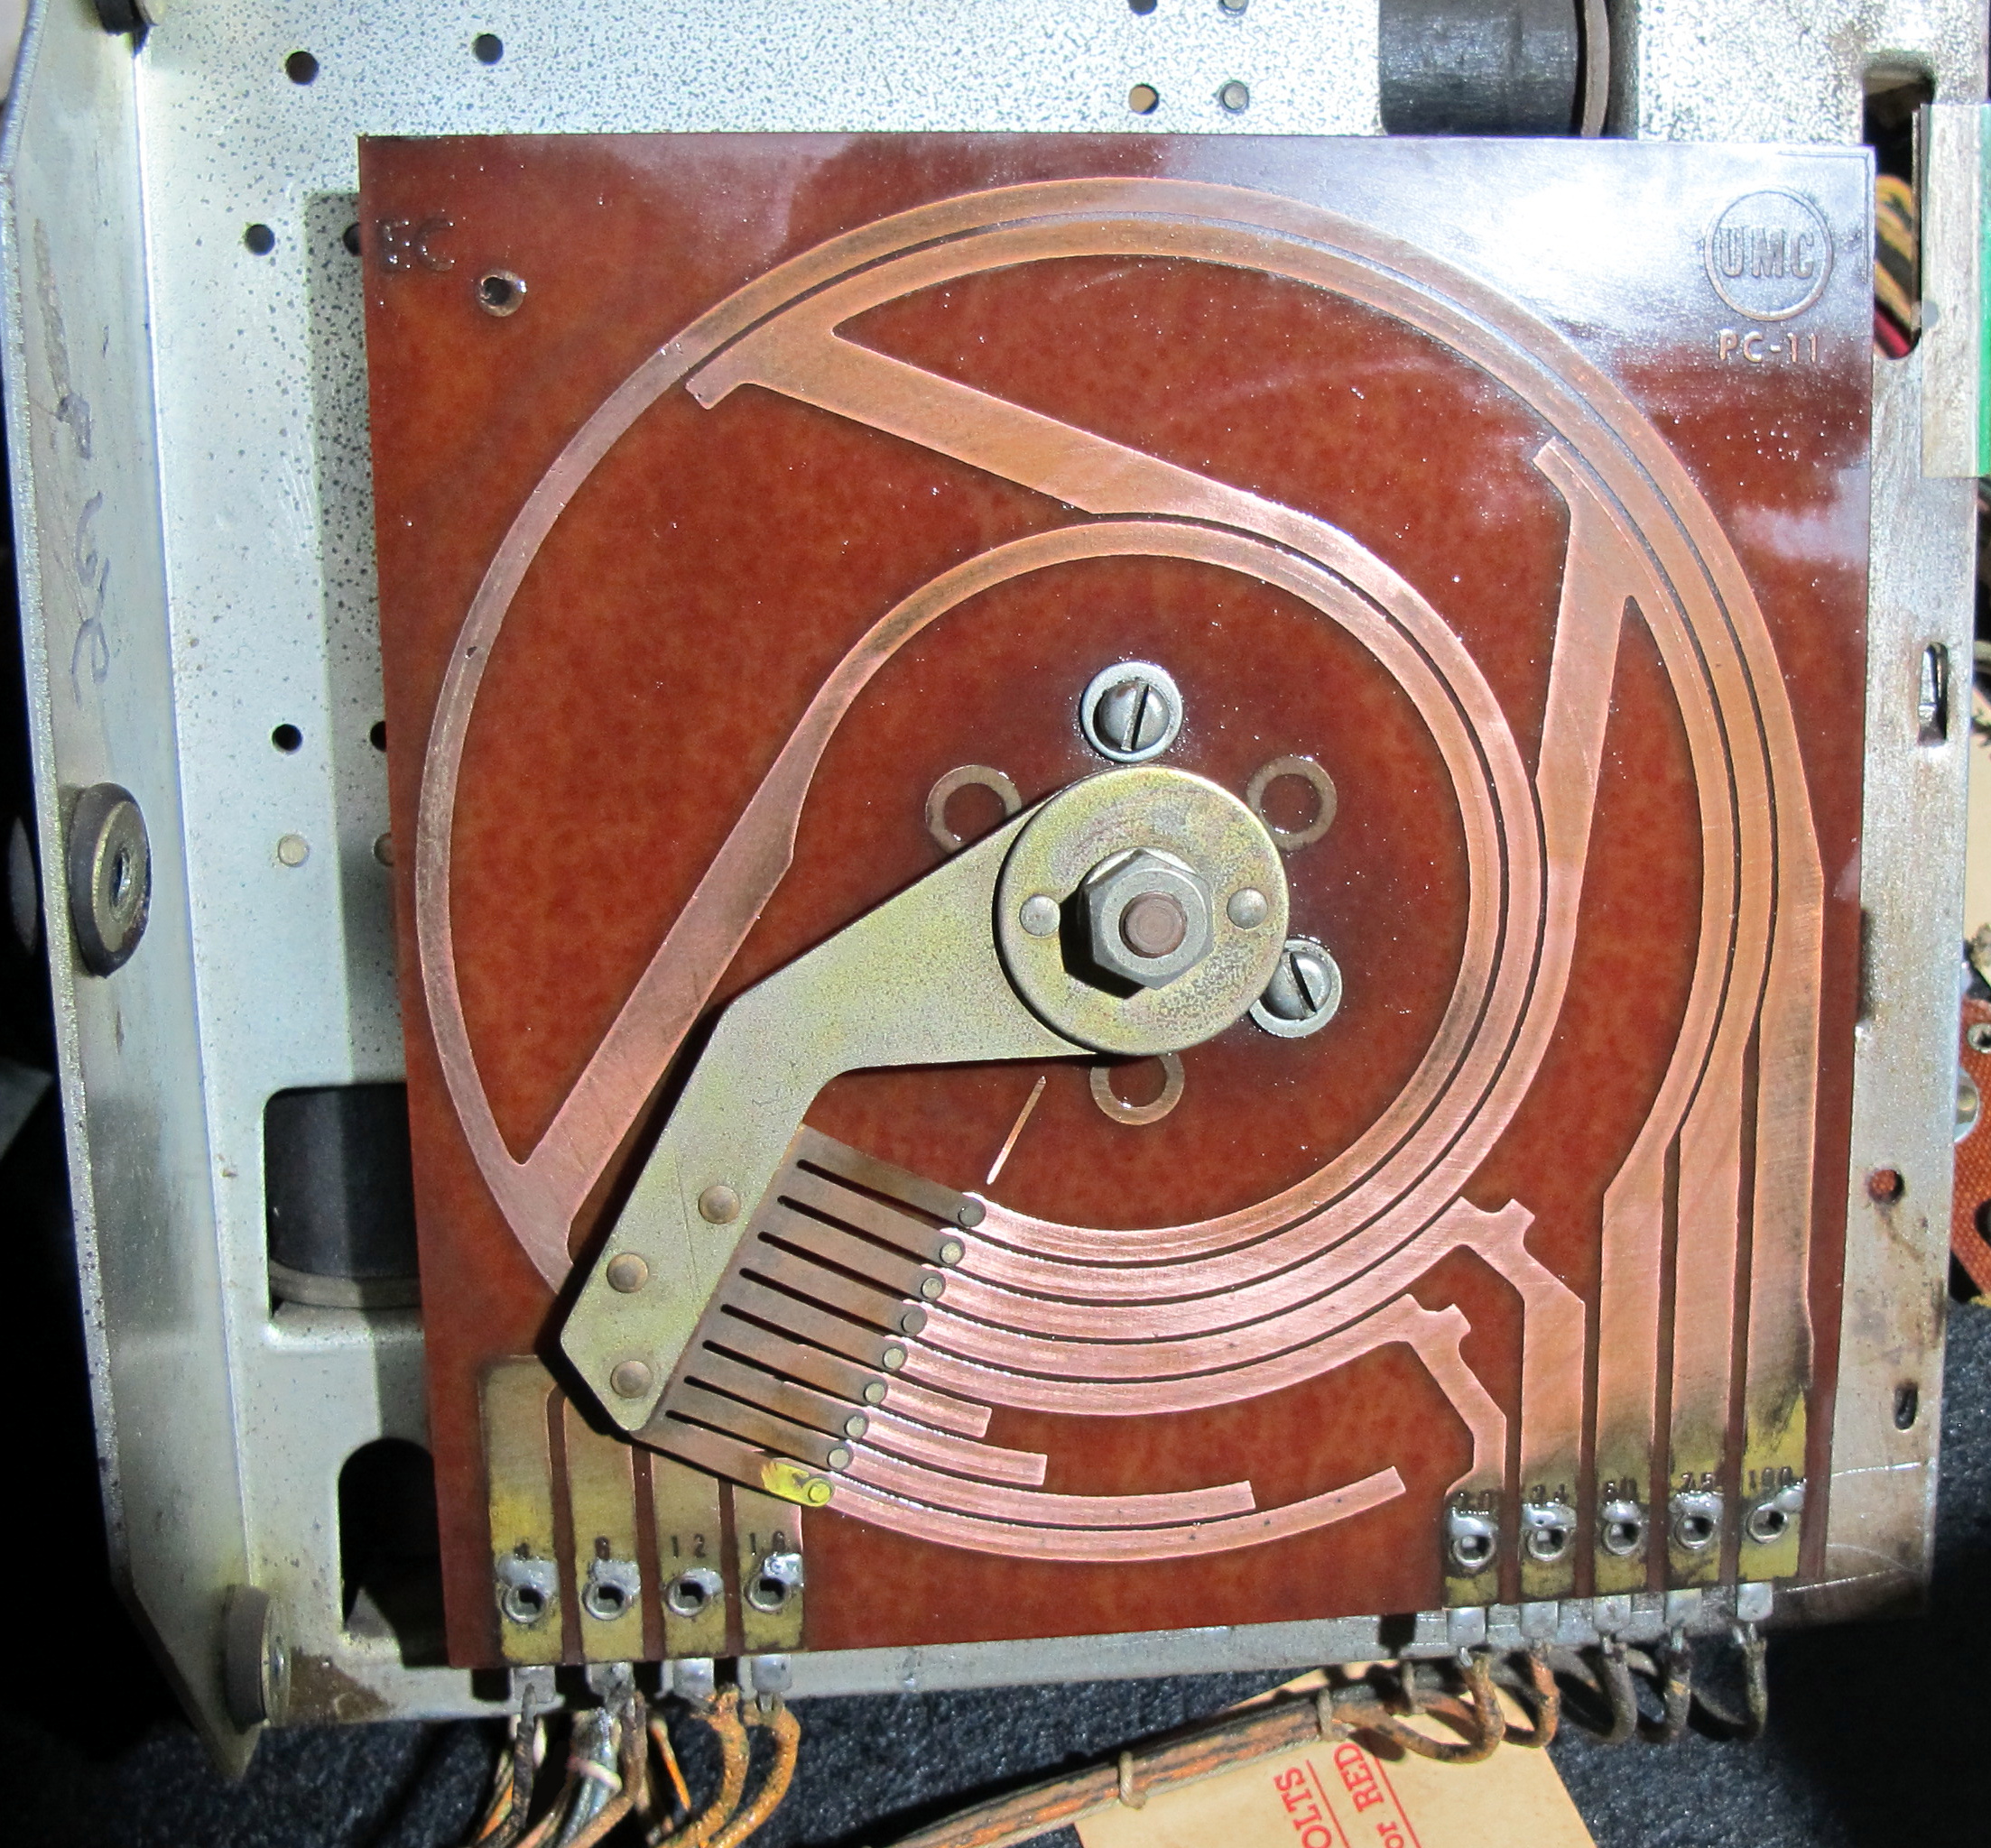 From The Numbers At The Very Bottom Of The Main Wiring Diagrams